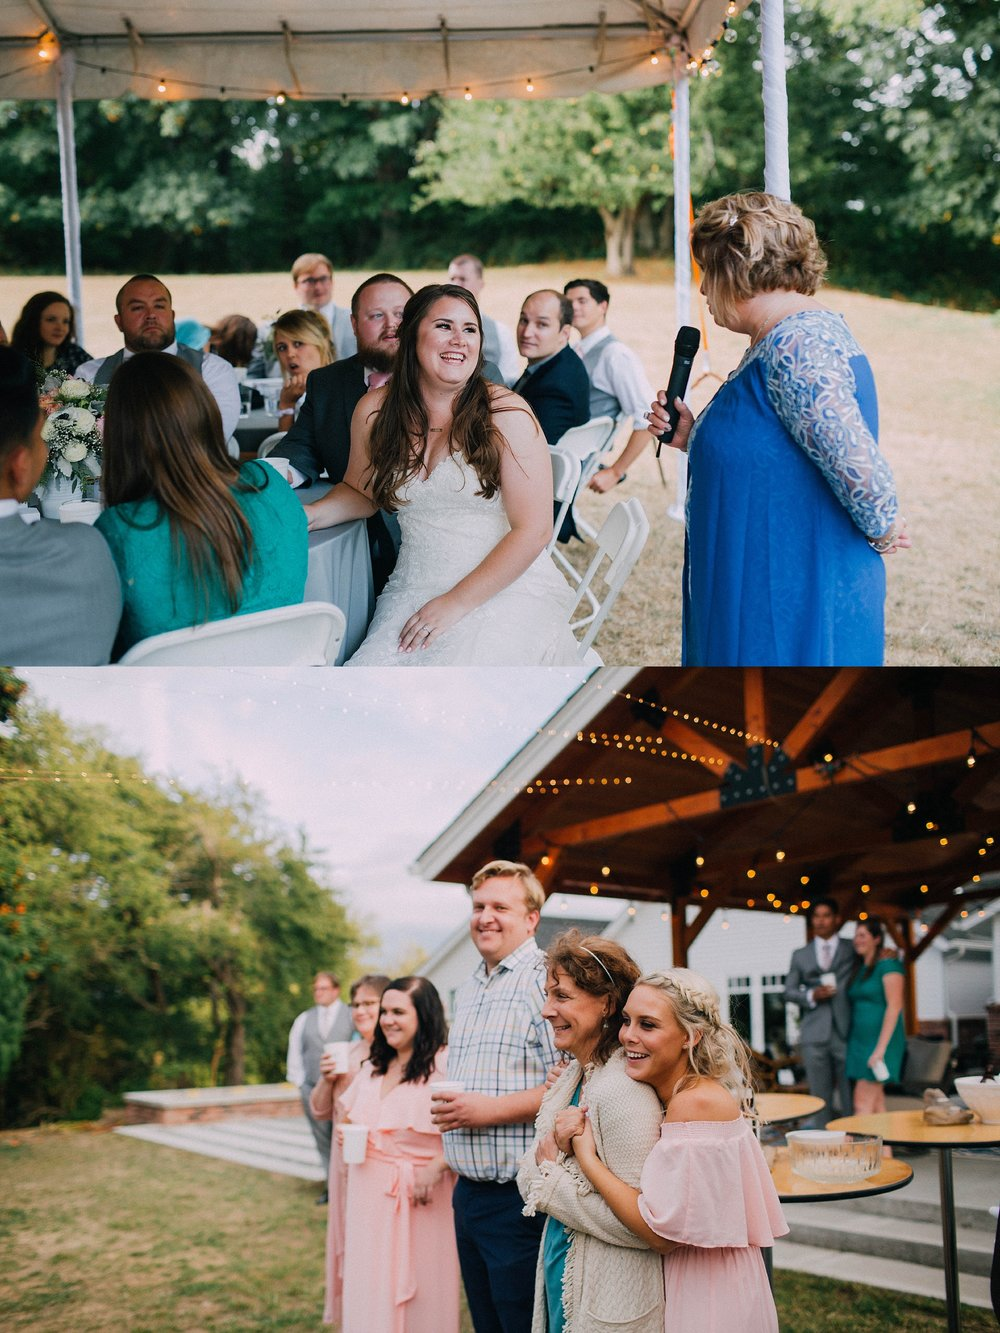 karisa ryan - vashon island backyard wedding photographer - seattle area backyard wedding photography - ashley vos-26.jpg